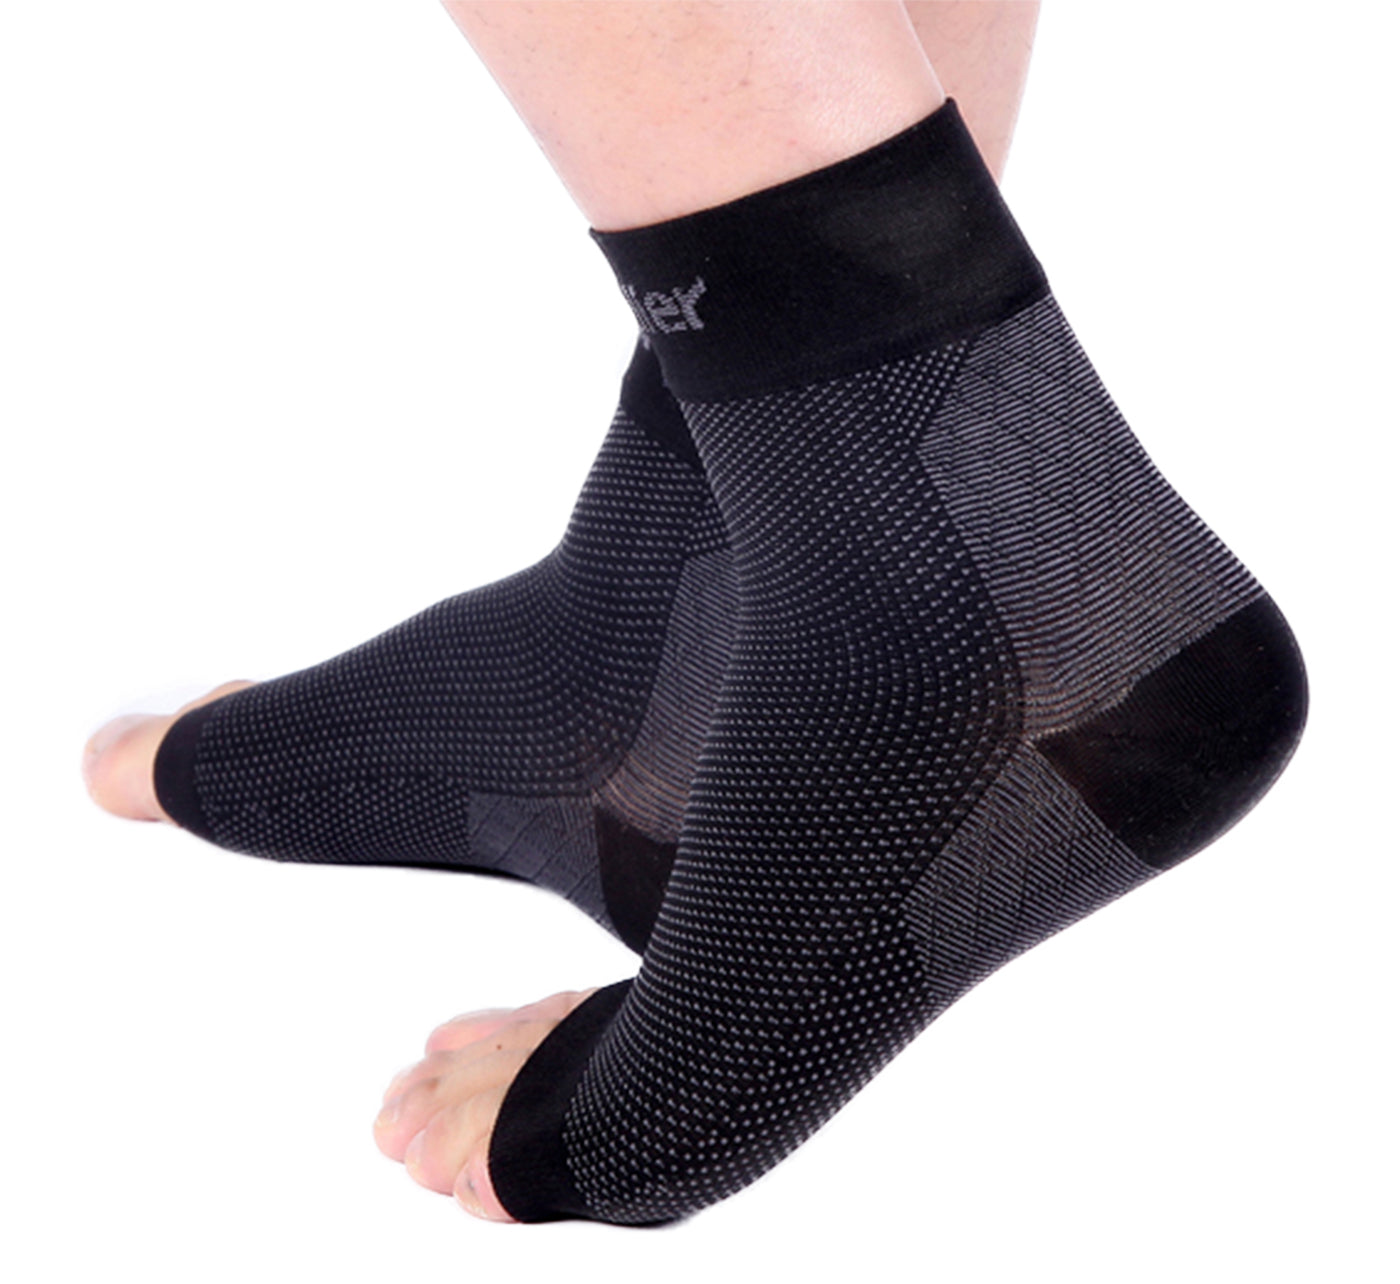 4686523351 Doc Miller Plantar Fasciitis Socks 30-40 mmHg Medical Grade Compression  Foot Sleeves - Ankle Arch & Heel Support for Achilles Tendon Support